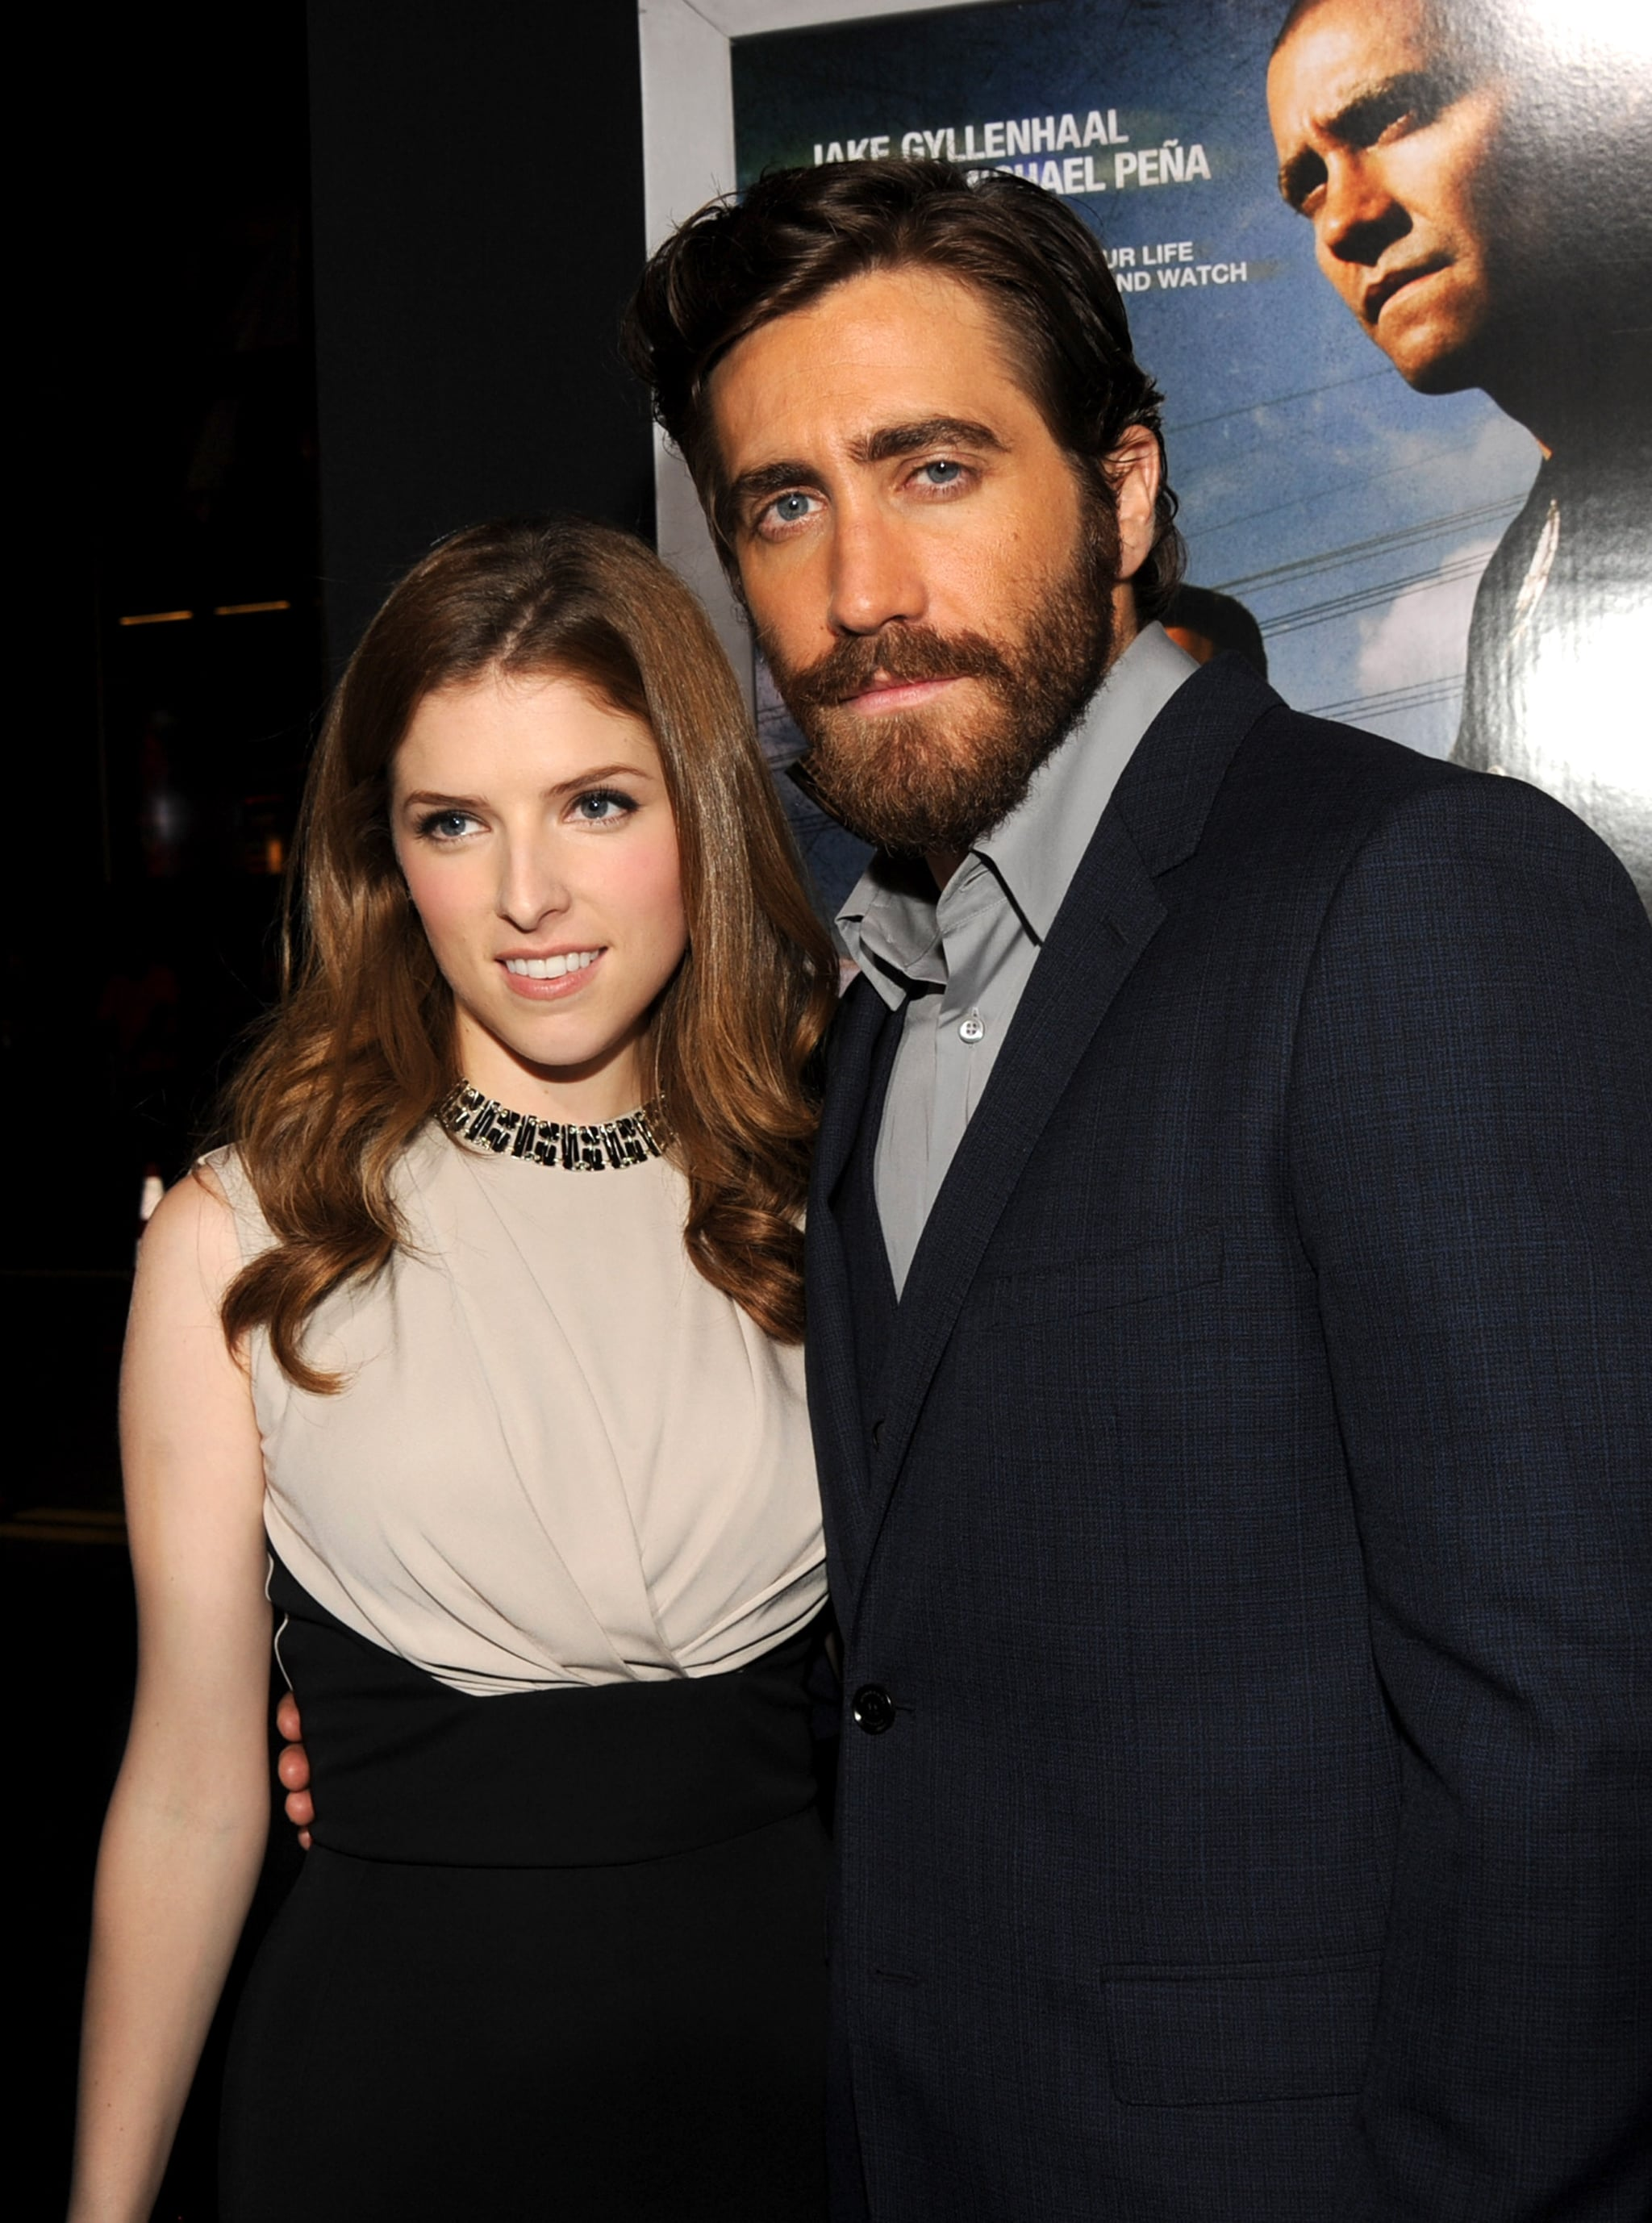 Jake Gyllenhaal posed with Anna Kendrick at the LA premiere of End of Watch .